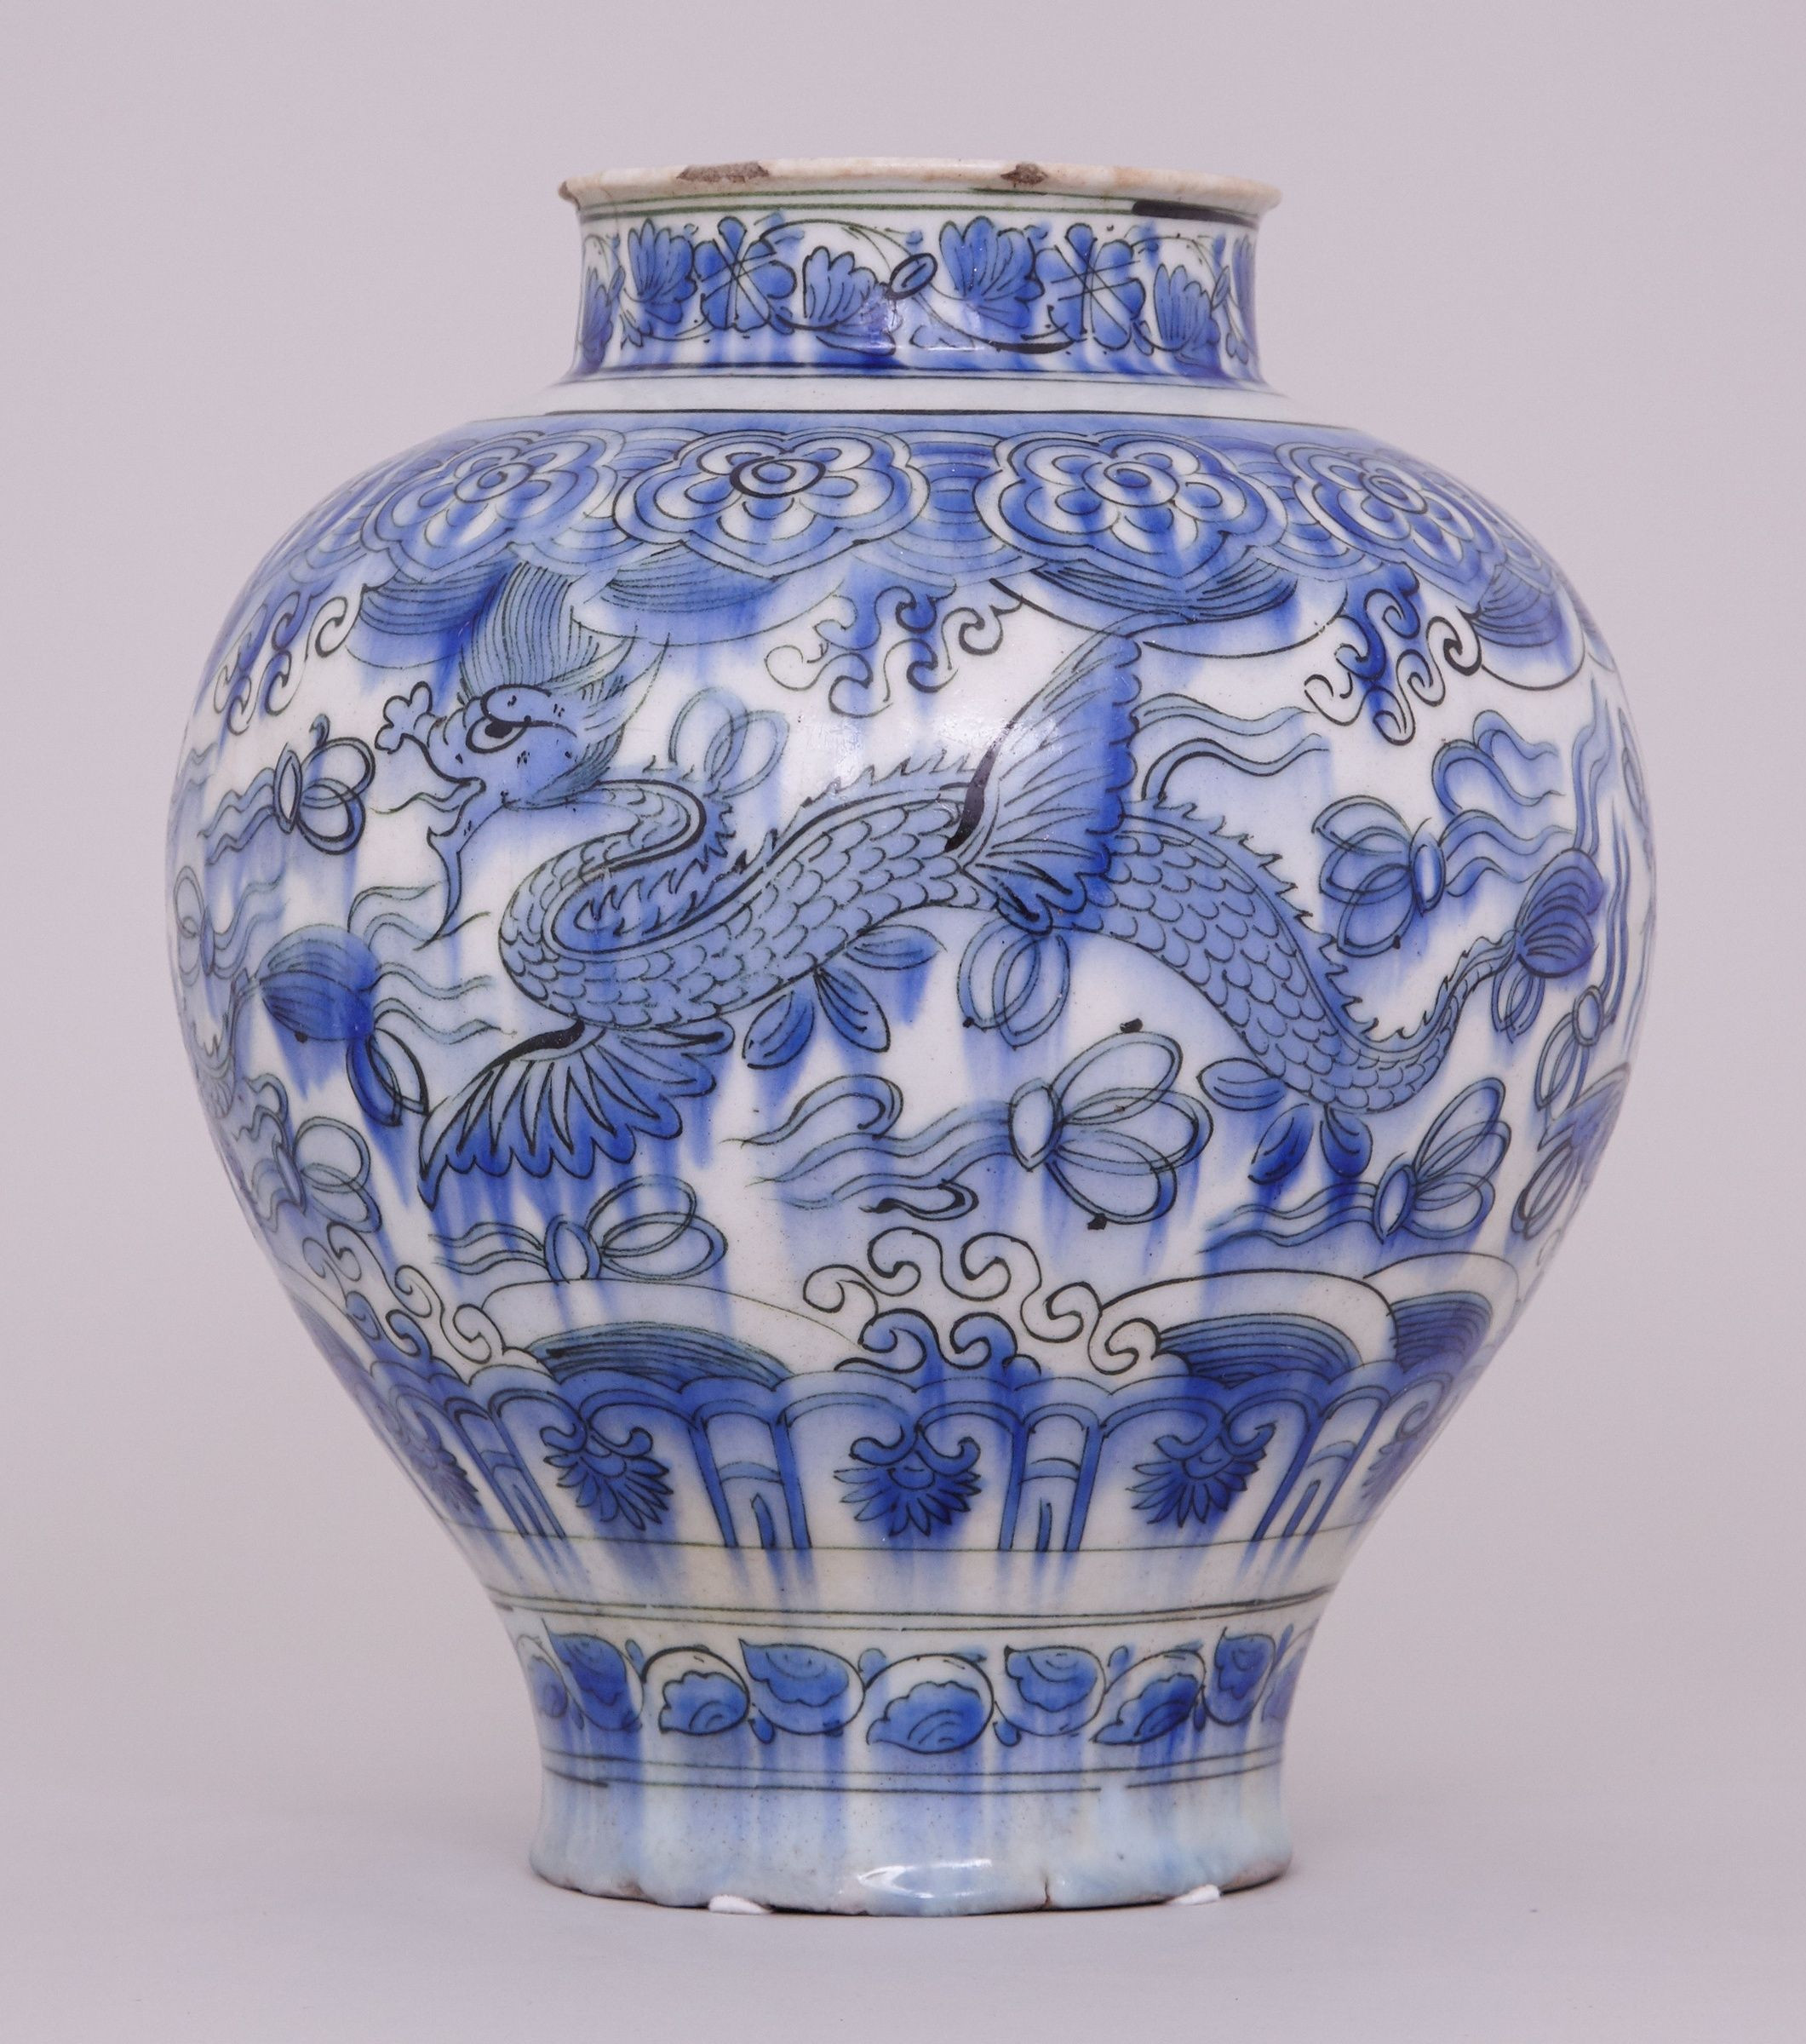 pottery vase designs of white pottery vase elegant a blue and white persian safavid jar 17th with regard to white pottery vase elegant a blue and white persian safavid jar 17th century